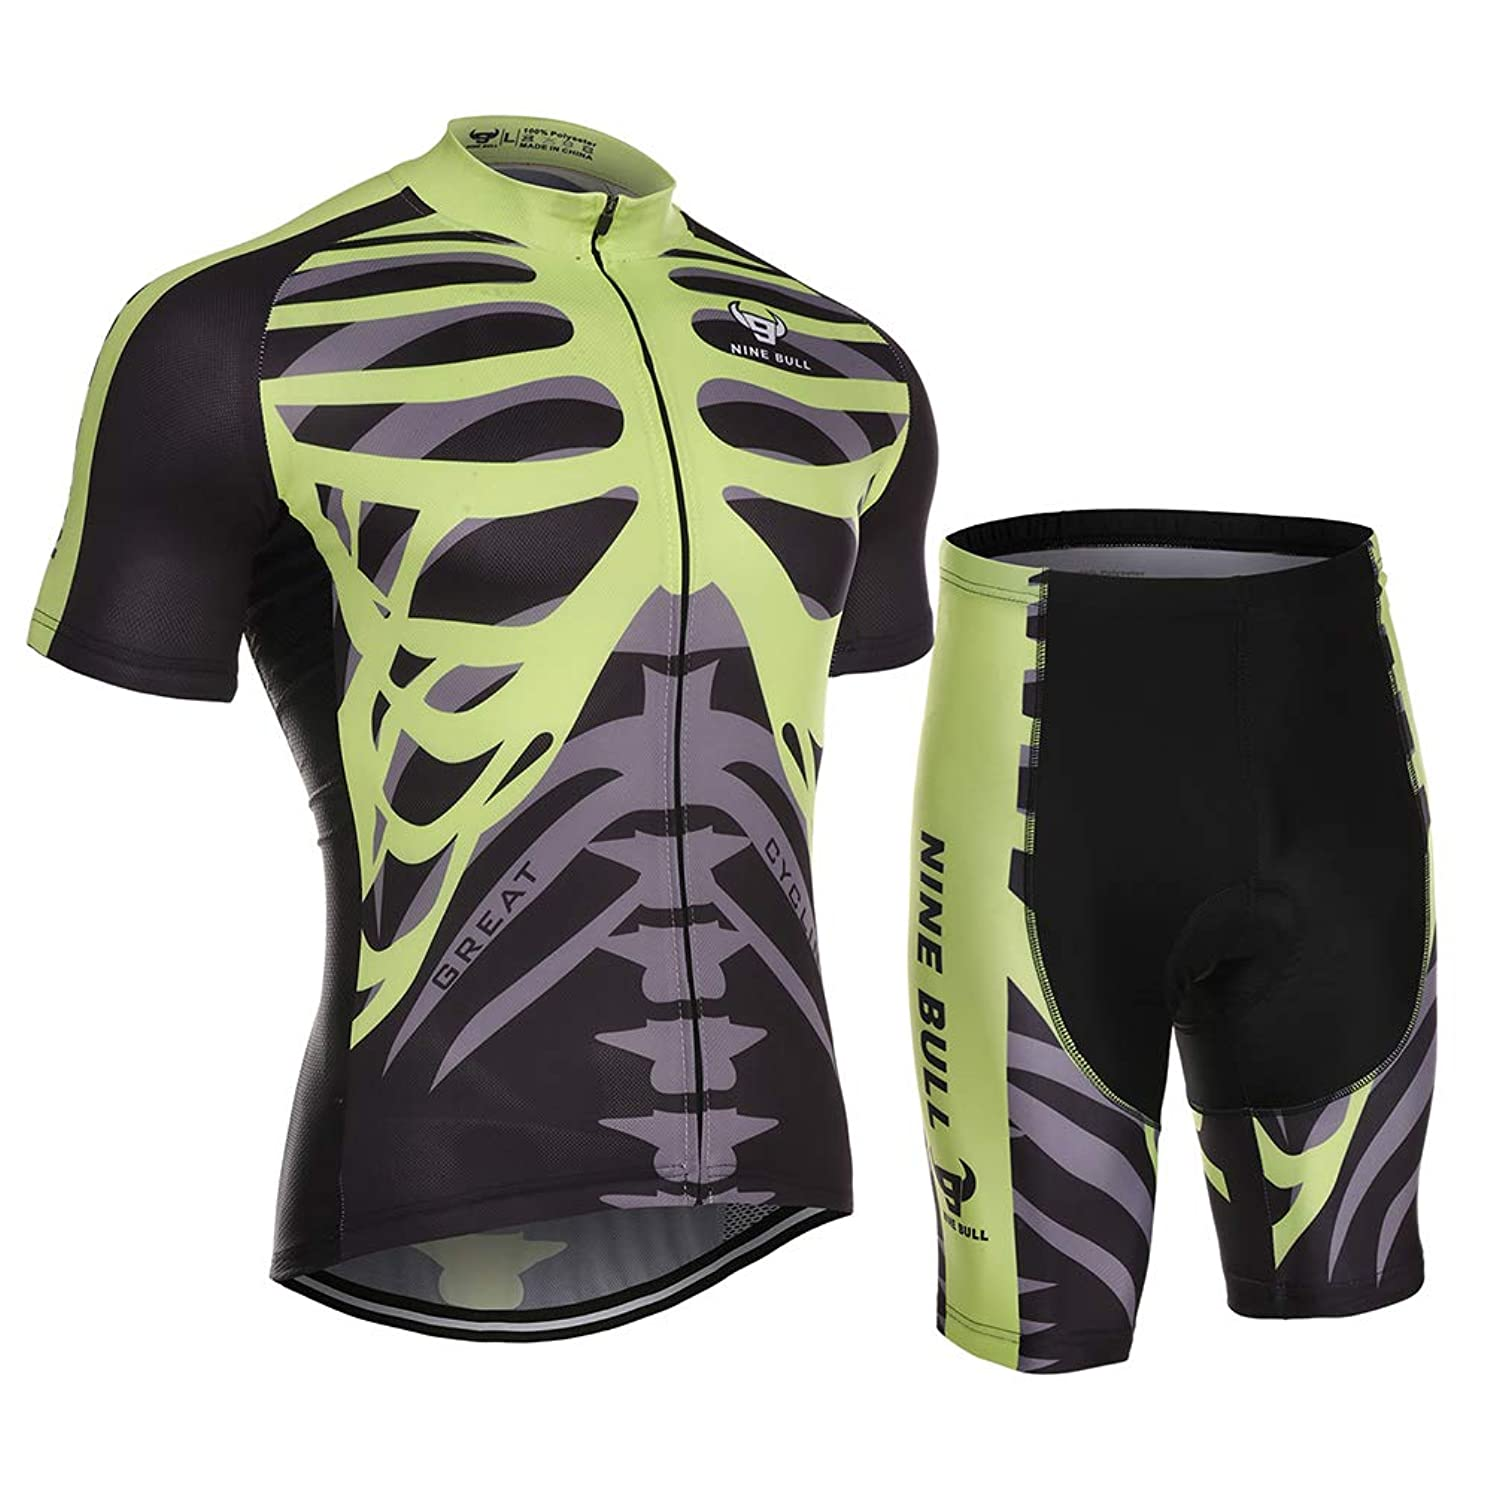 nine bull Men's Cycling Jersey Set - Reflective Quick-Dry Biking Shirt and 3D Padded Cycling Bike Shorts fxdn30262467364